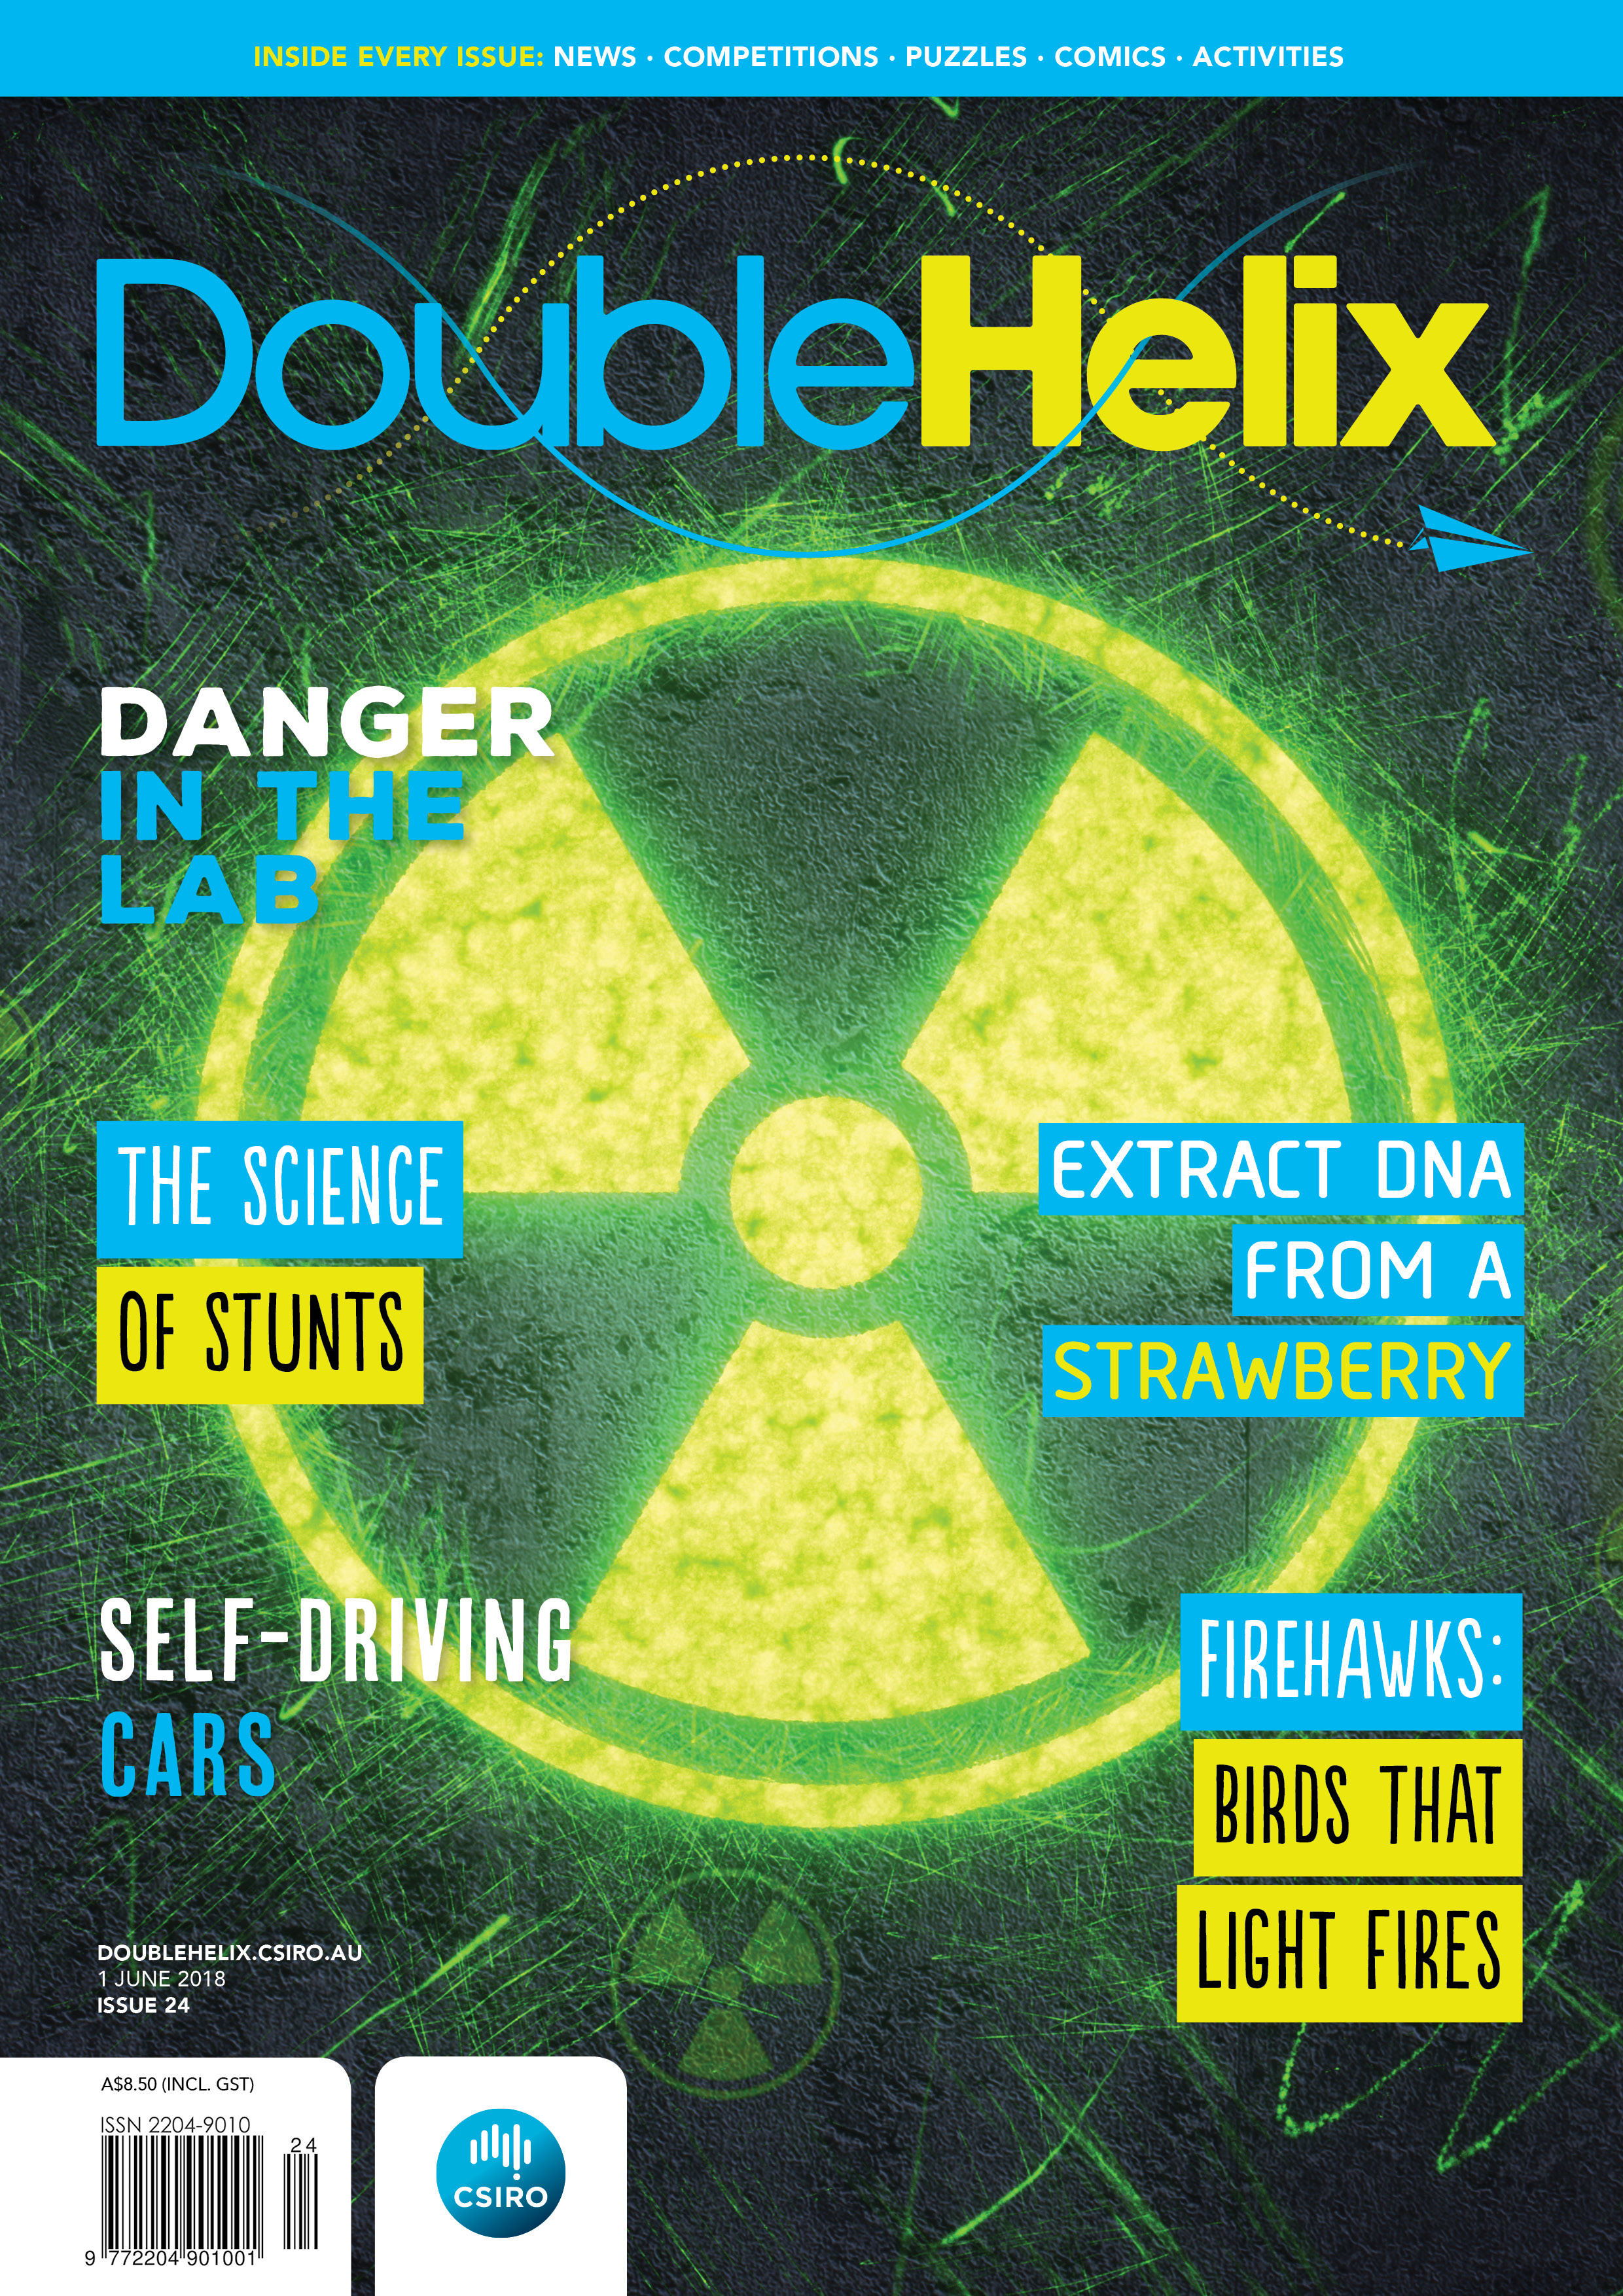 Double Helix cover with radioactive symbol